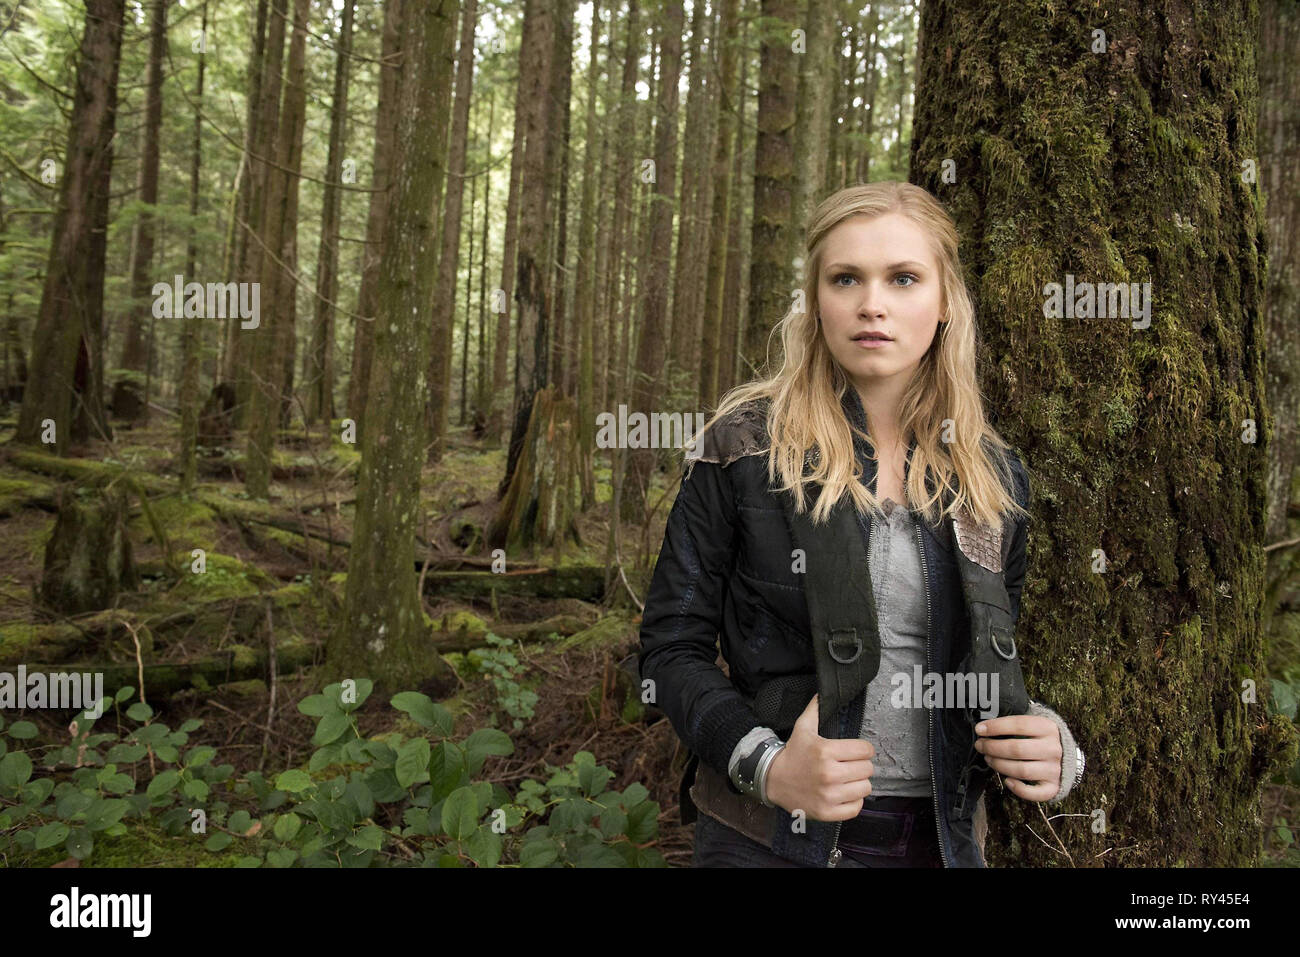 ELIZA TAYLOR, THE HUNDRED, 2014 - Stock Image